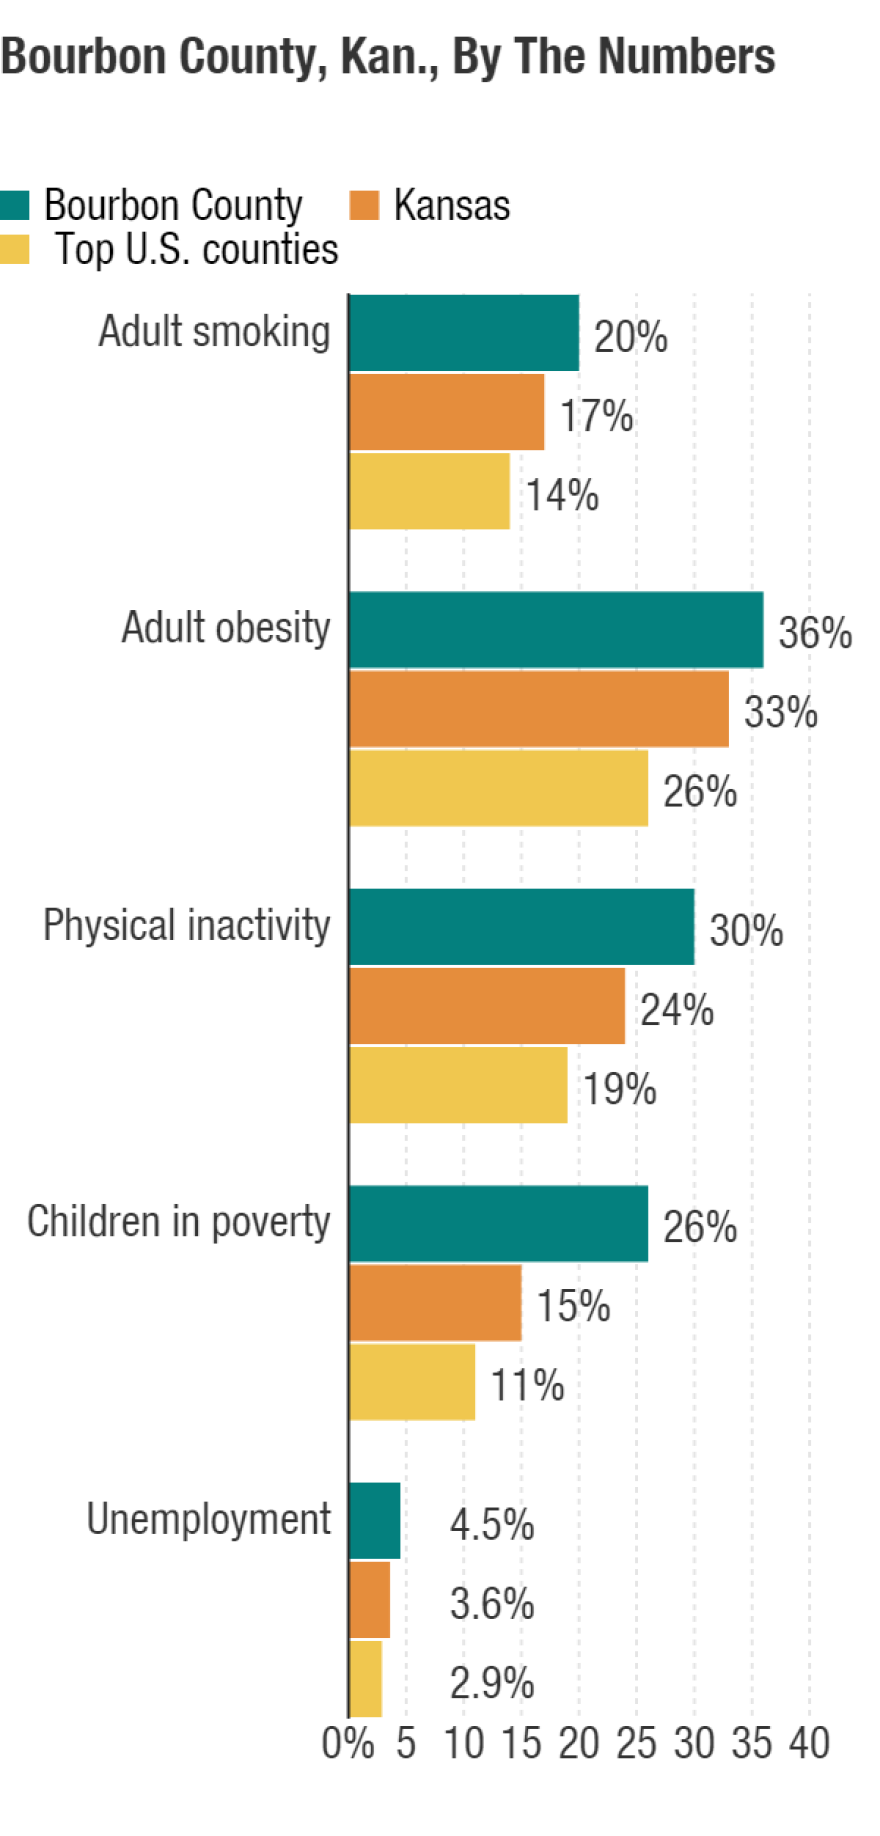 Source: countyhealthrankings.org, the County Health Rankings & Roadmaps collaboration of the Robert Wood Johnson Foundation and the University of Wisconsin Population Health Institute